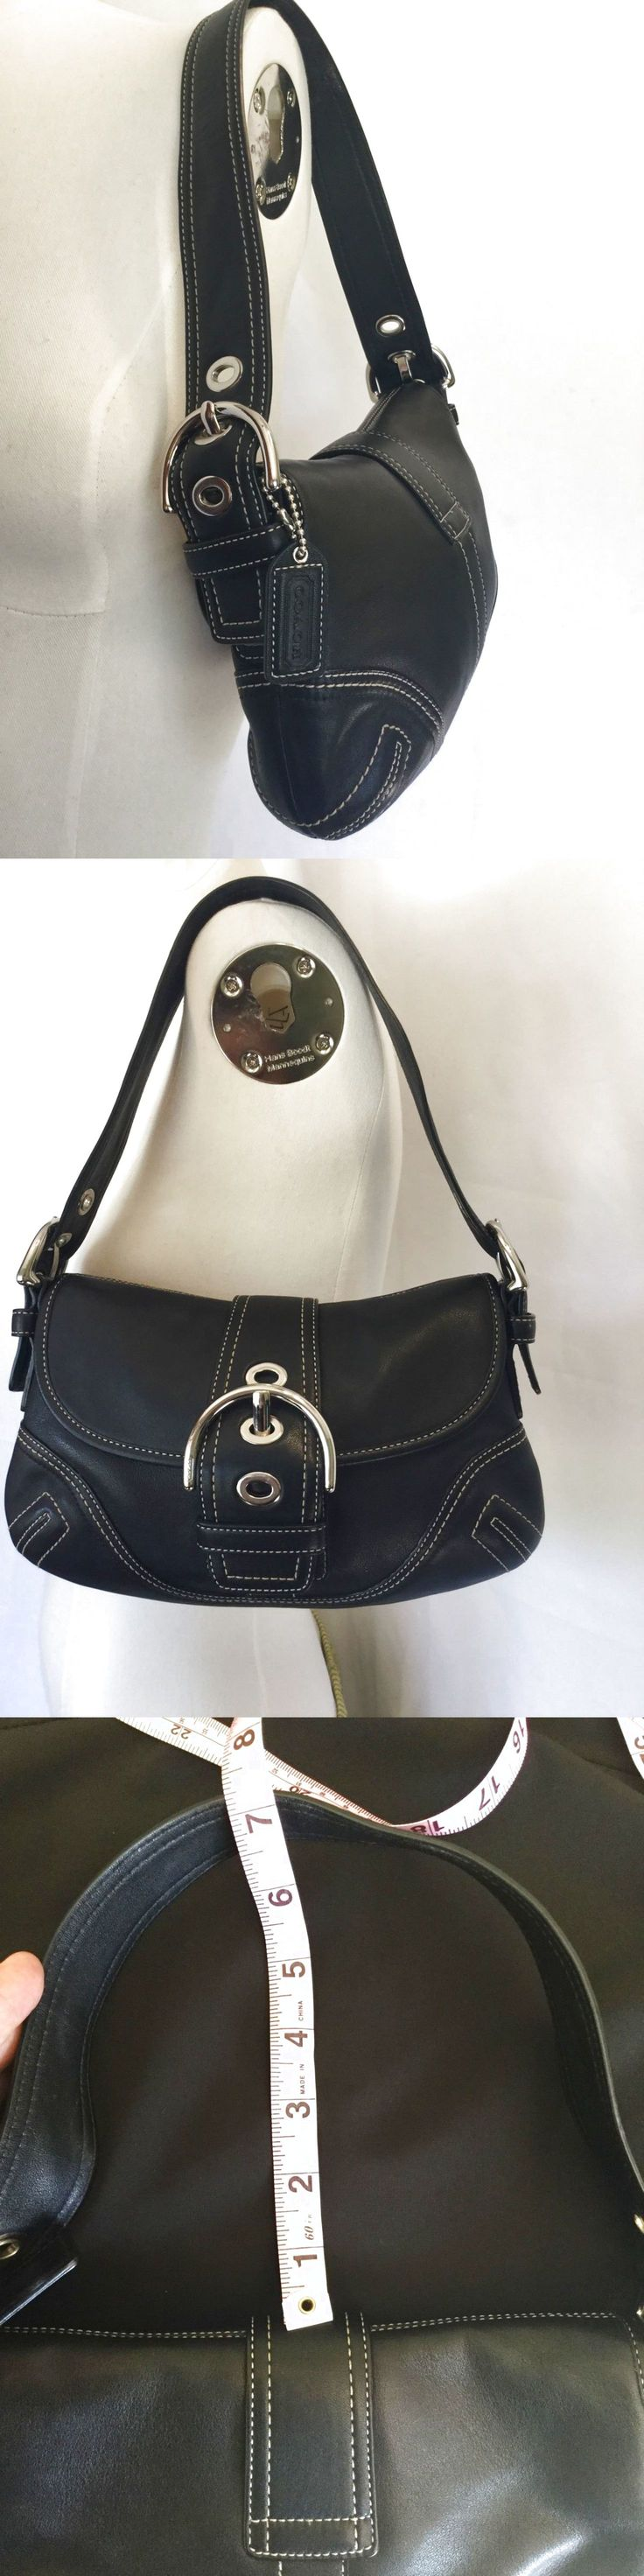 Coach Small Purse Handbag Black Shoulder Bag $40.0